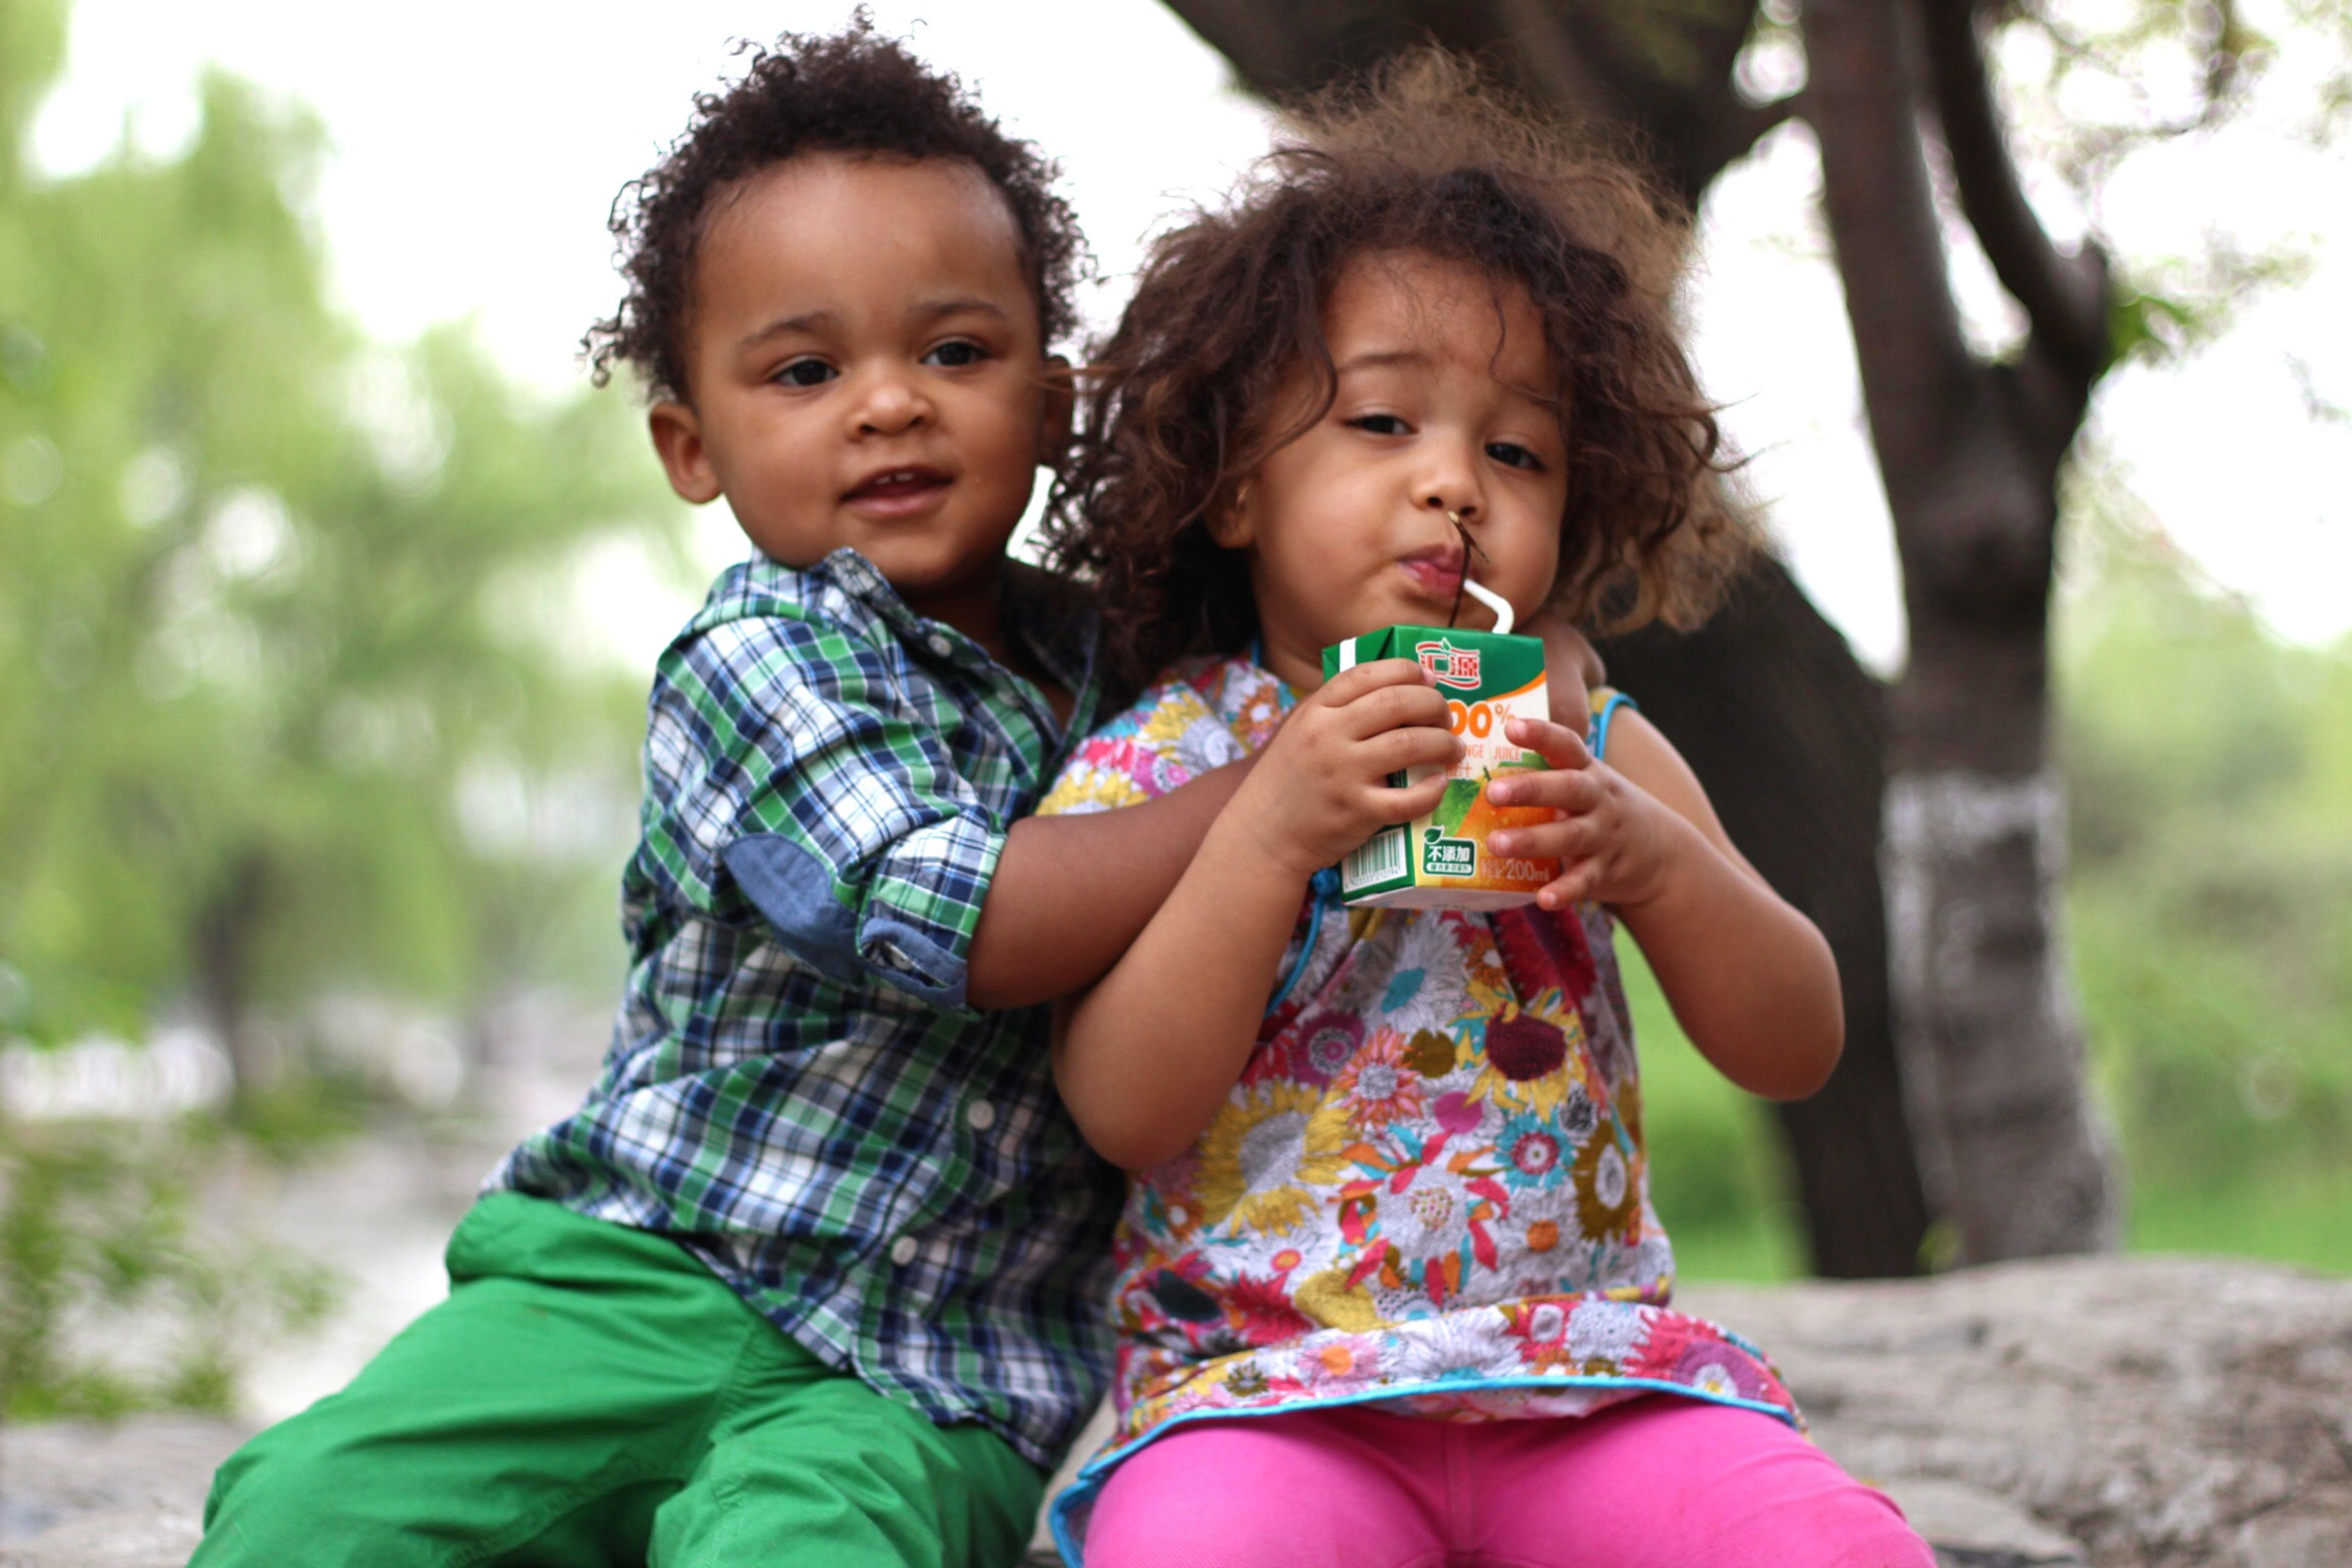 childhood, togetherness, bonding, elementary age, leisure activity, boys, lifestyles, person, love, innocence, cute, girls, casual clothing, family, happiness, family with one child, smiling